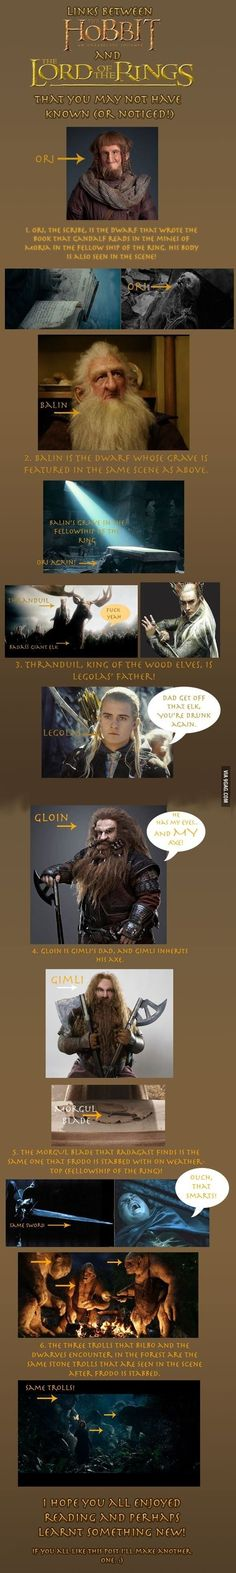 Links between The Hobbit & The Lord of the Rings